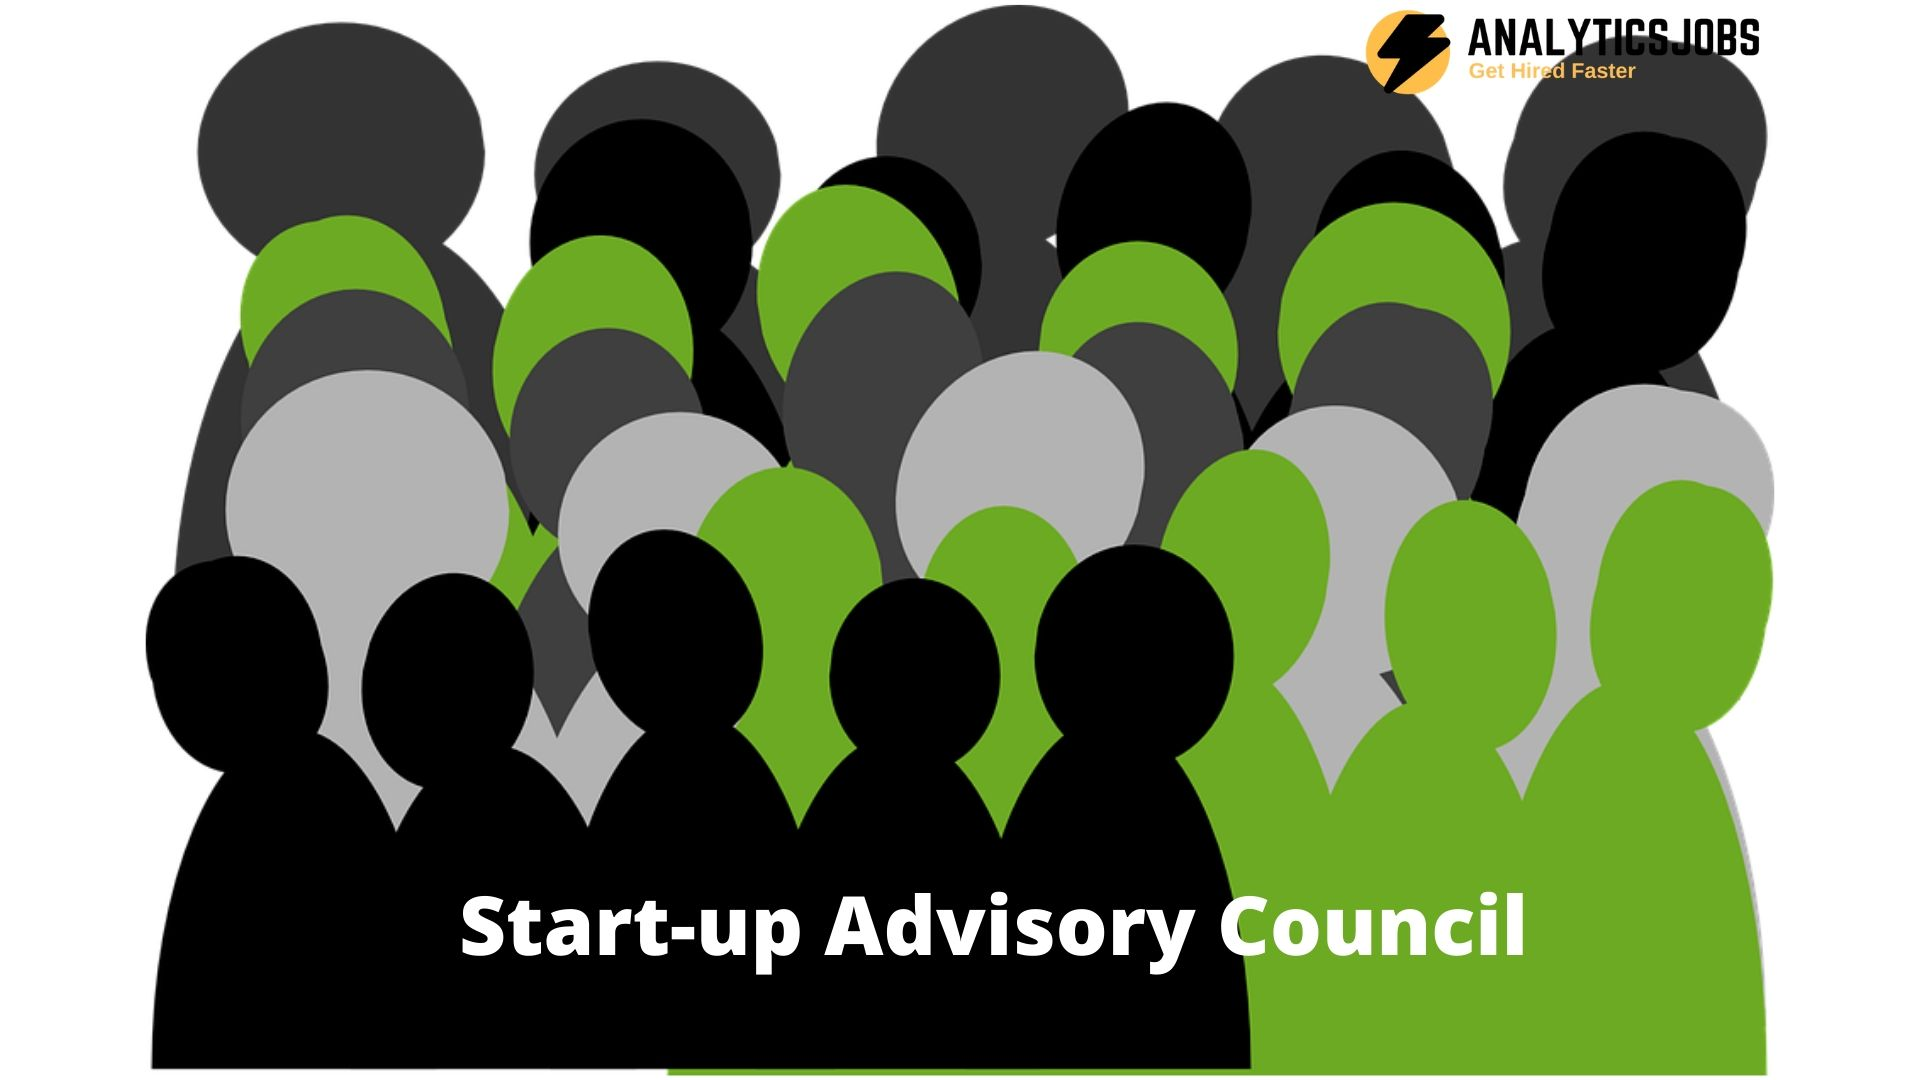 Startup Advisory Council will help India reach $5 tn economy